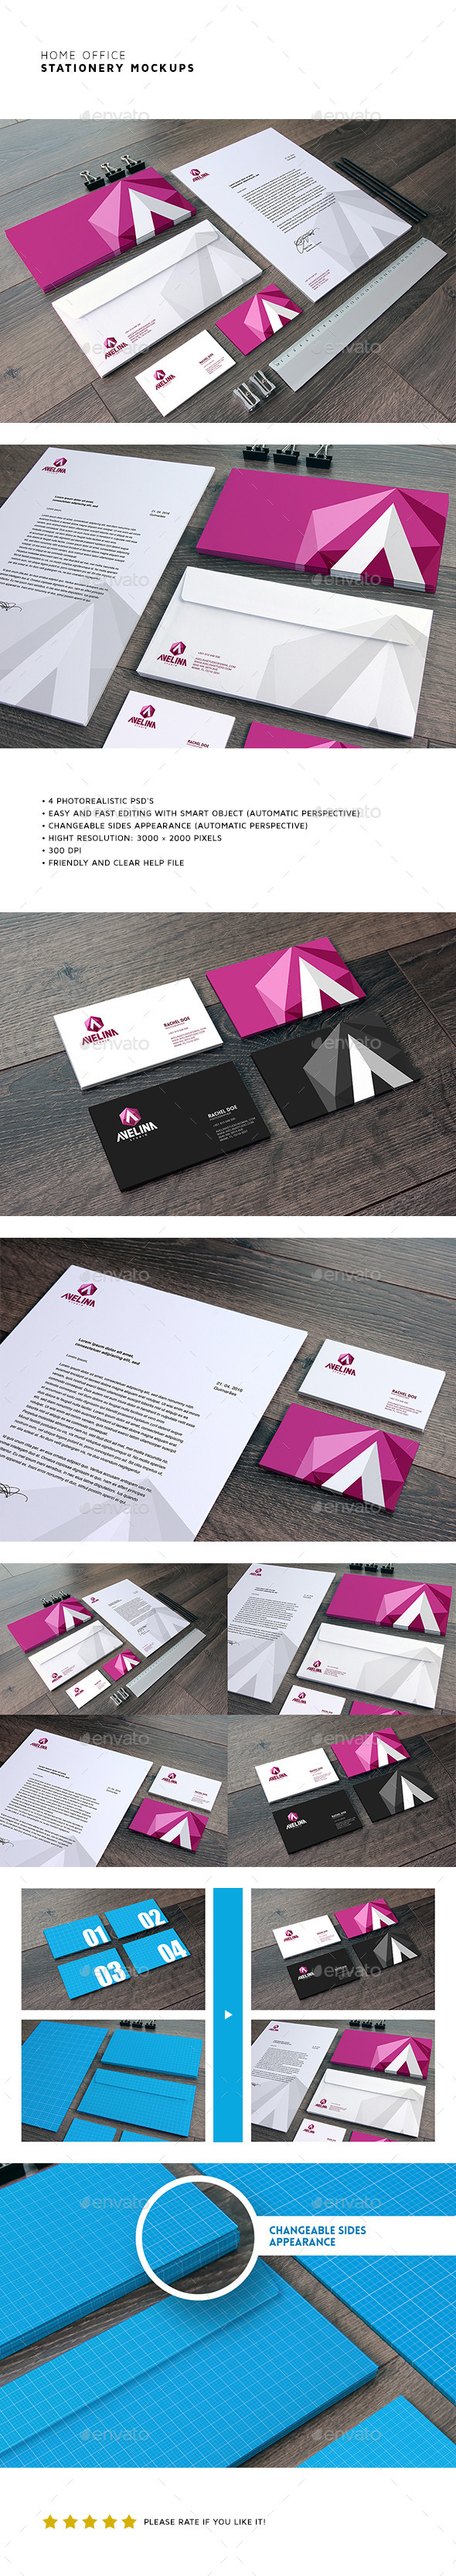 Corporate Identity - Branding Mockups V2 (Stationery)